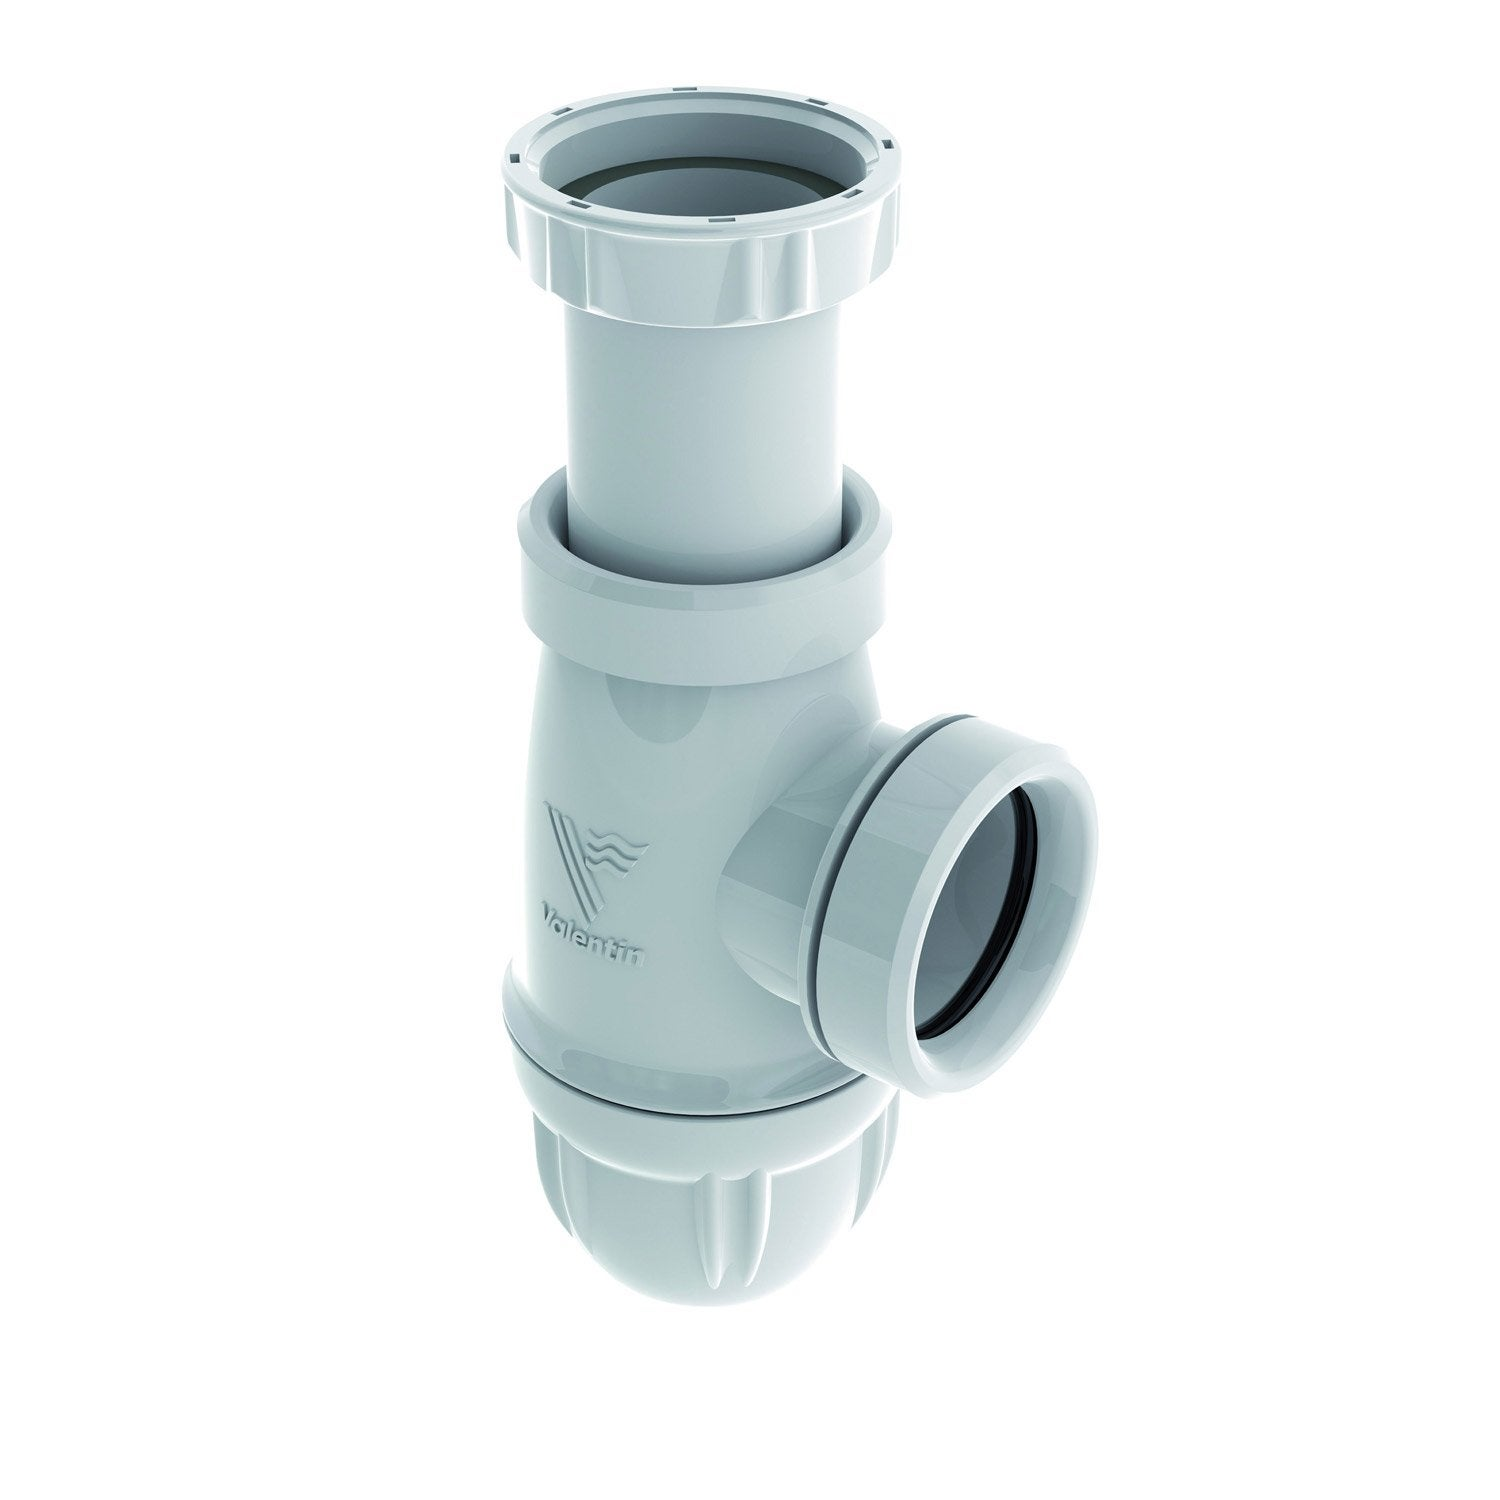 Exceptionnel Amazing Siphon Avec Joints Integr S Pour Vier Leroy Merlin  Changer Joint Evier With Changer